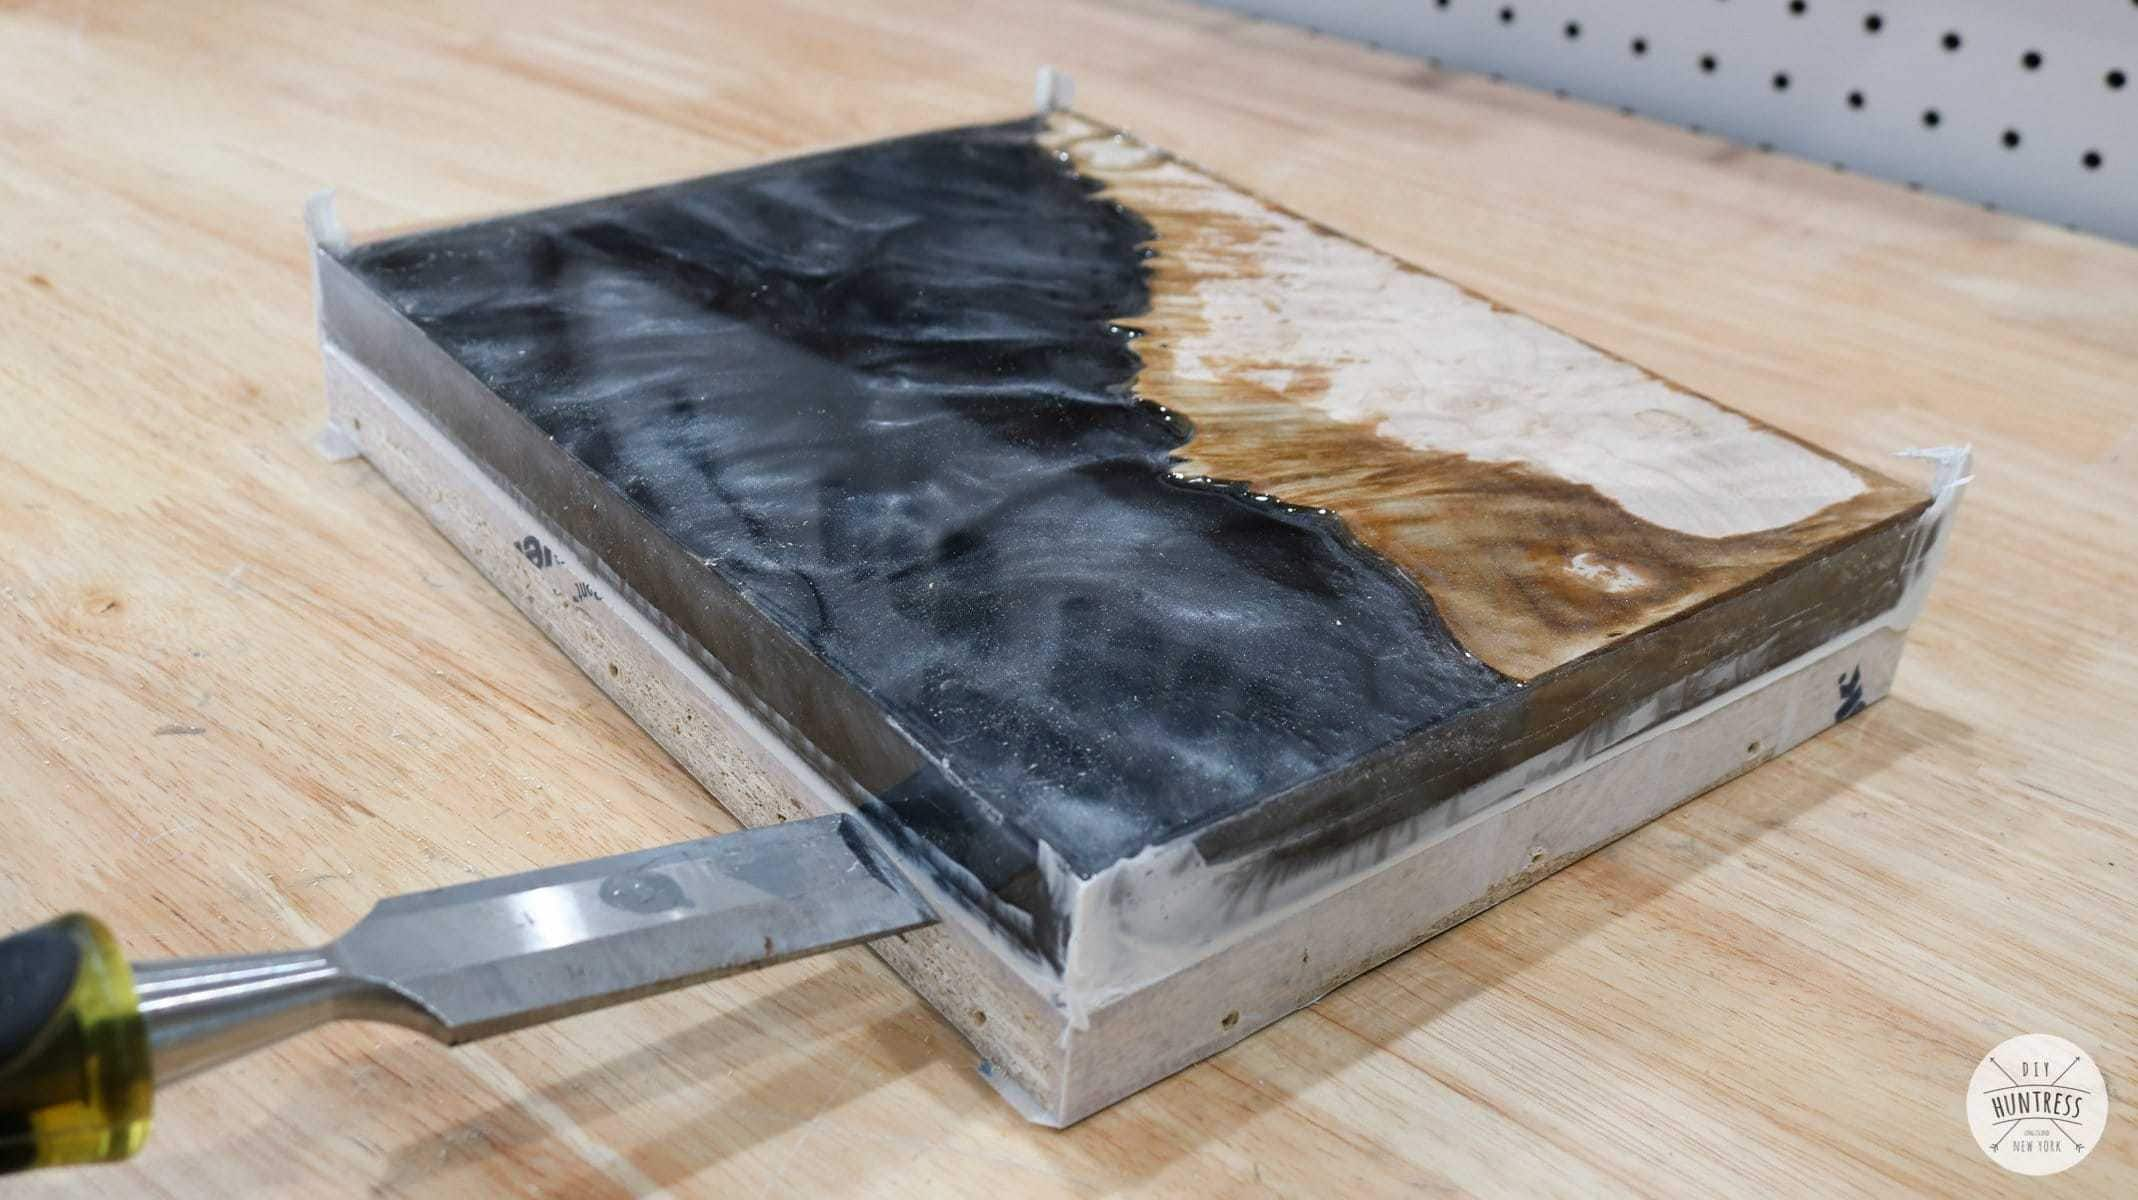 how to remove wood and resin from mold